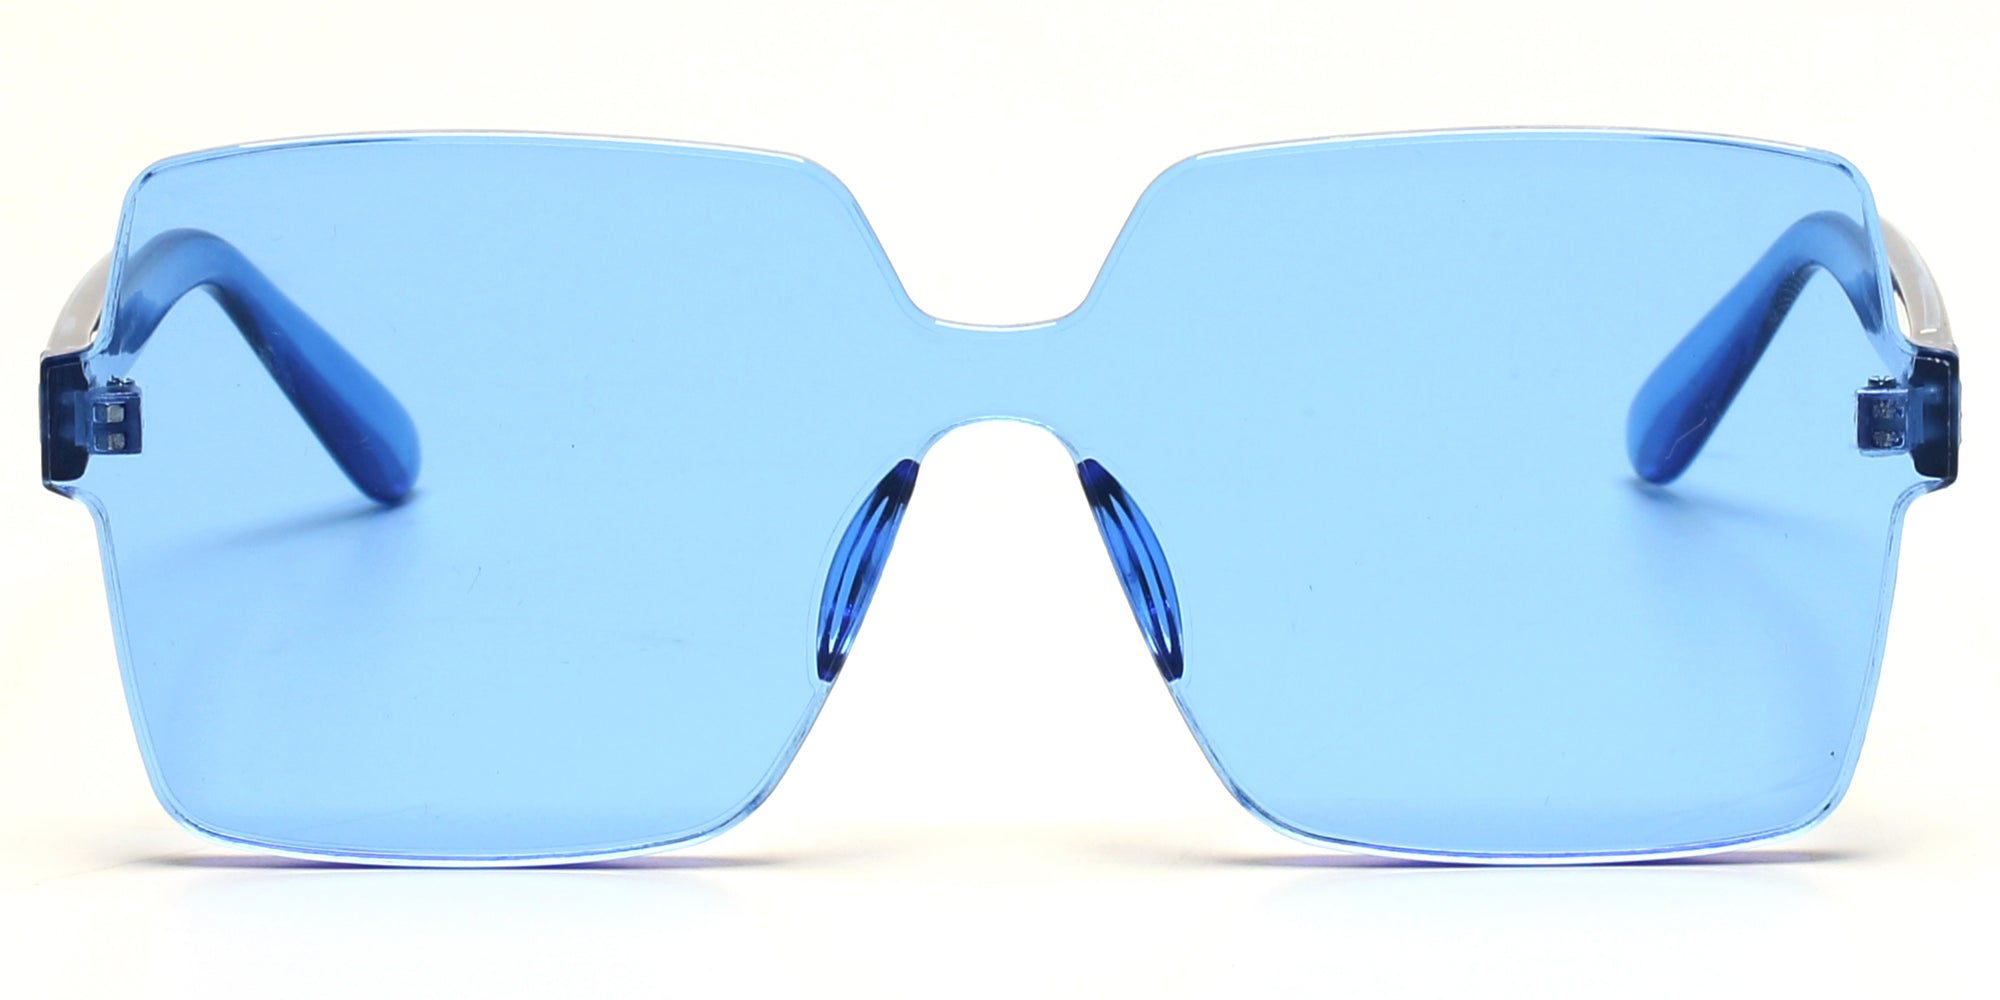 S2079 - Retro Flat Top Square Oversize Sunglasses - Wholesale Sunglasses and glasses